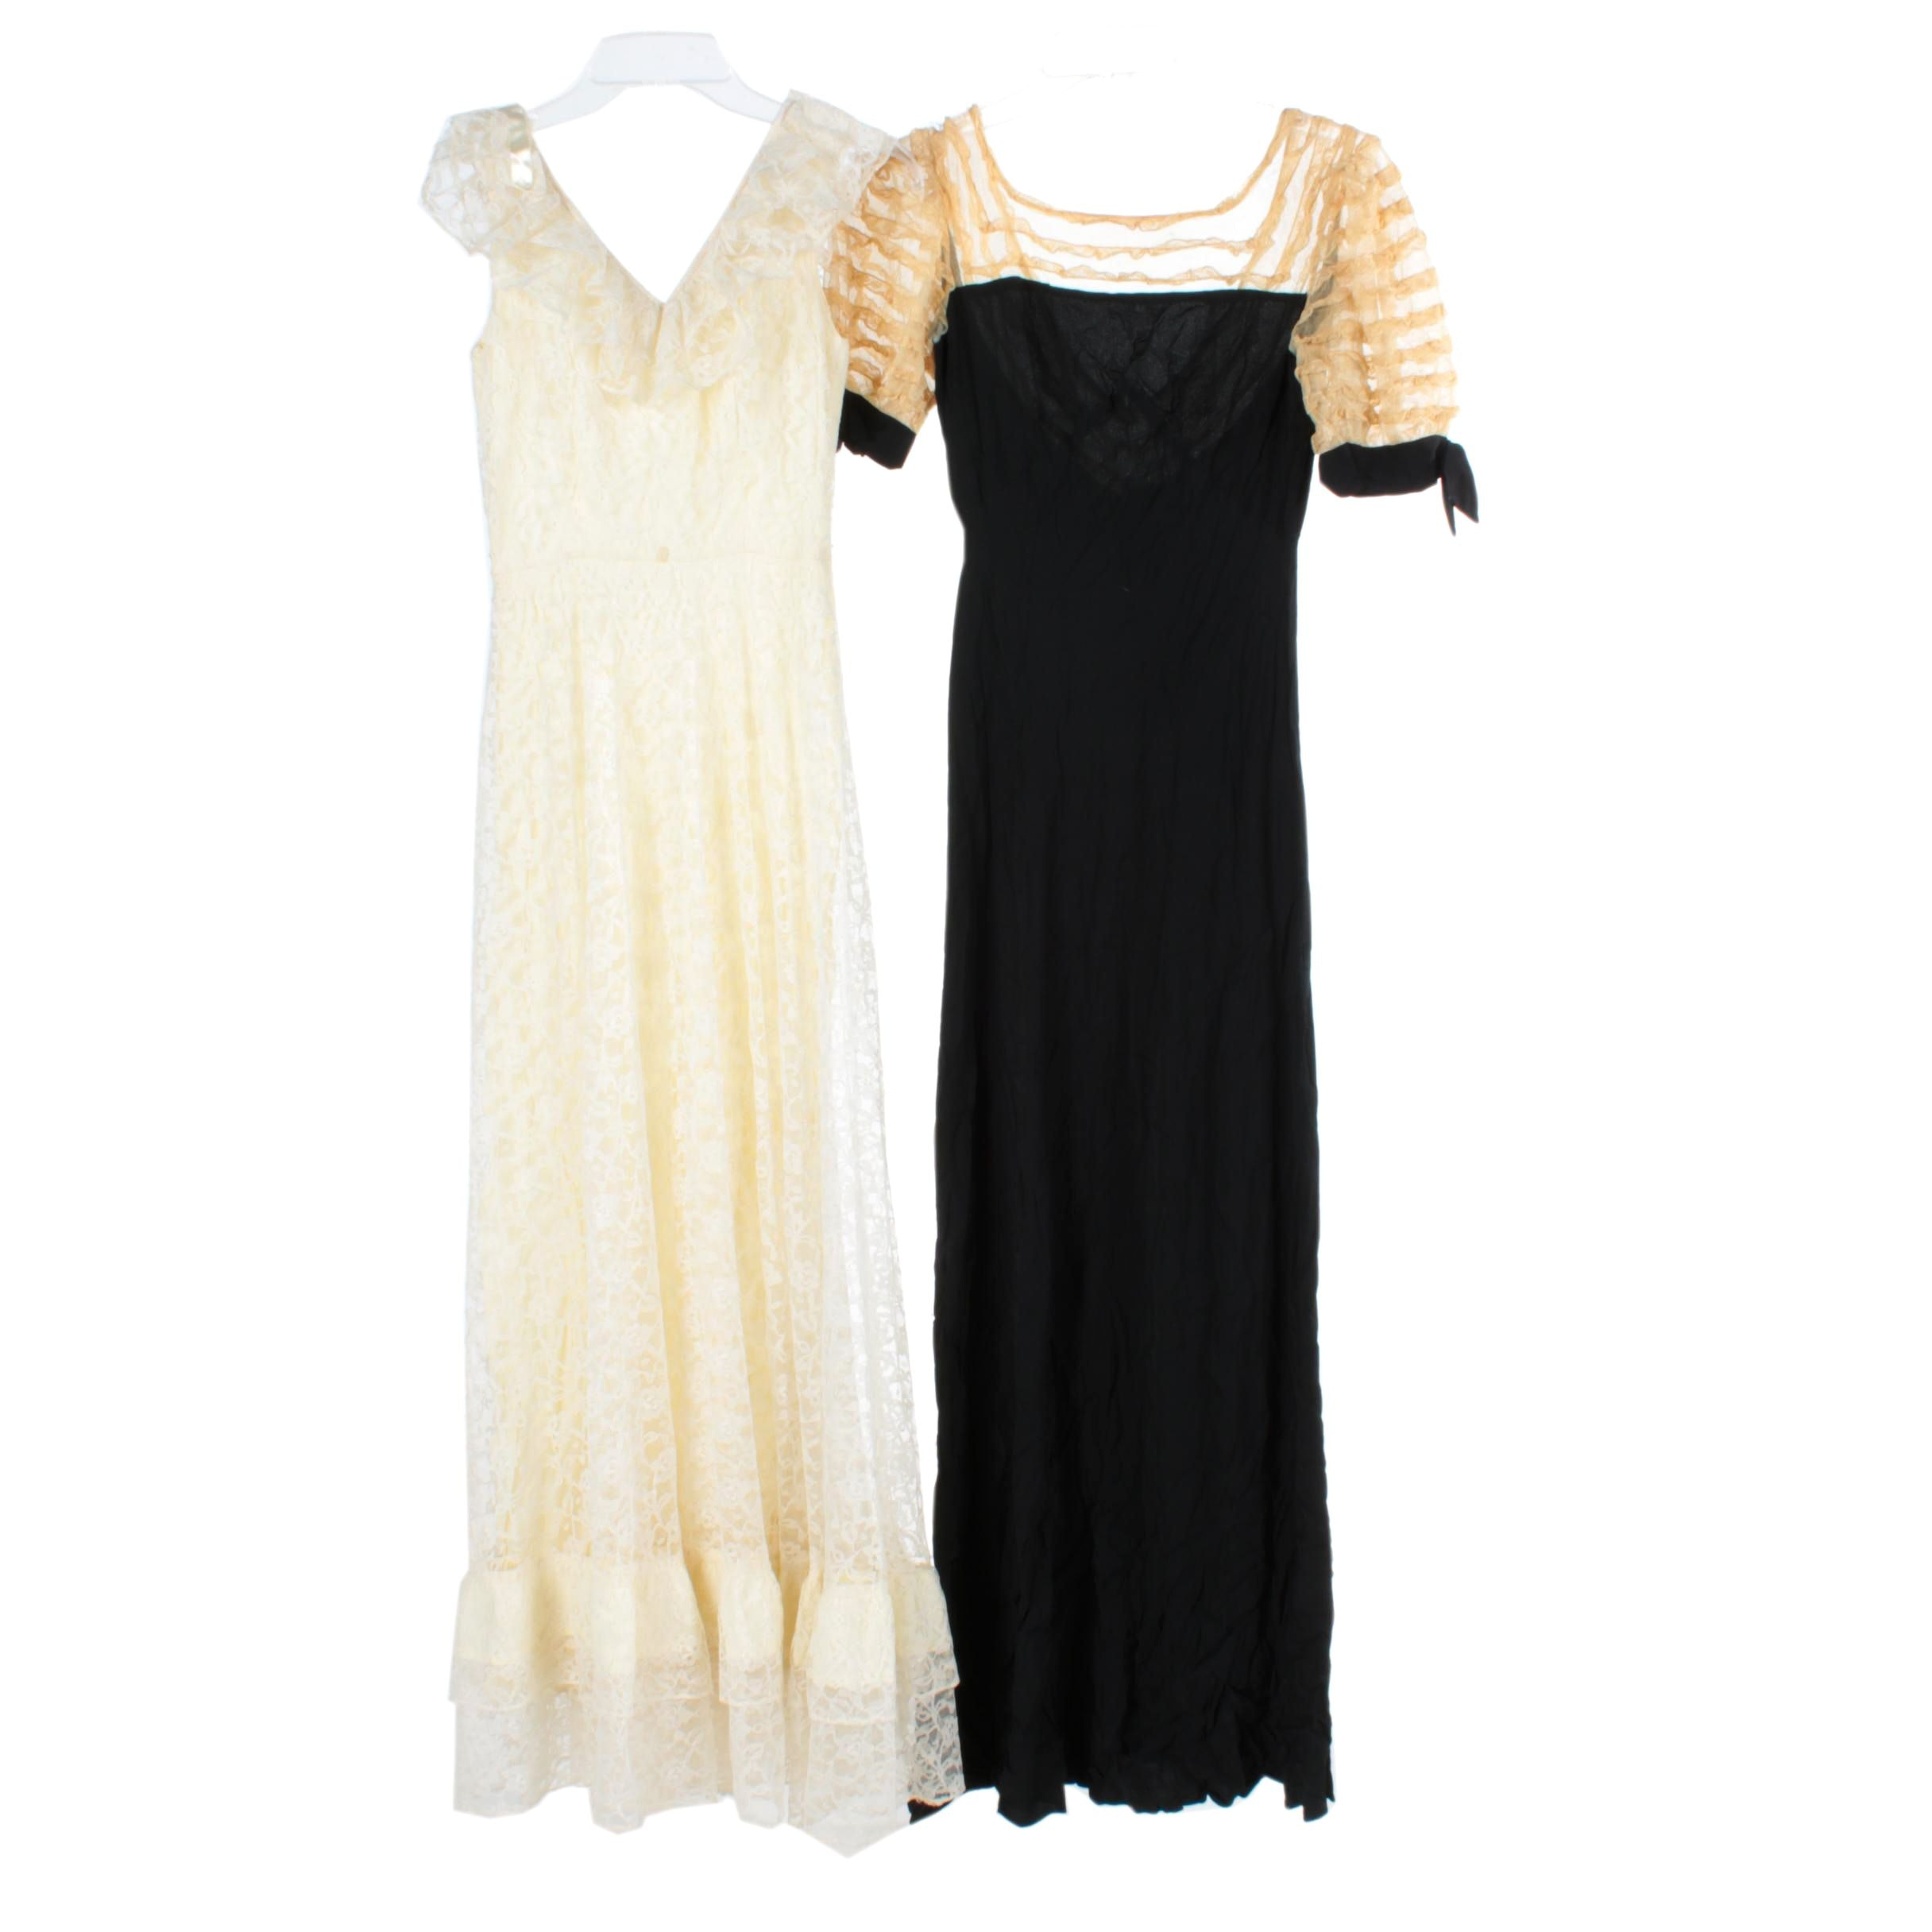 Women's Vintage Lace and Evening Dresses